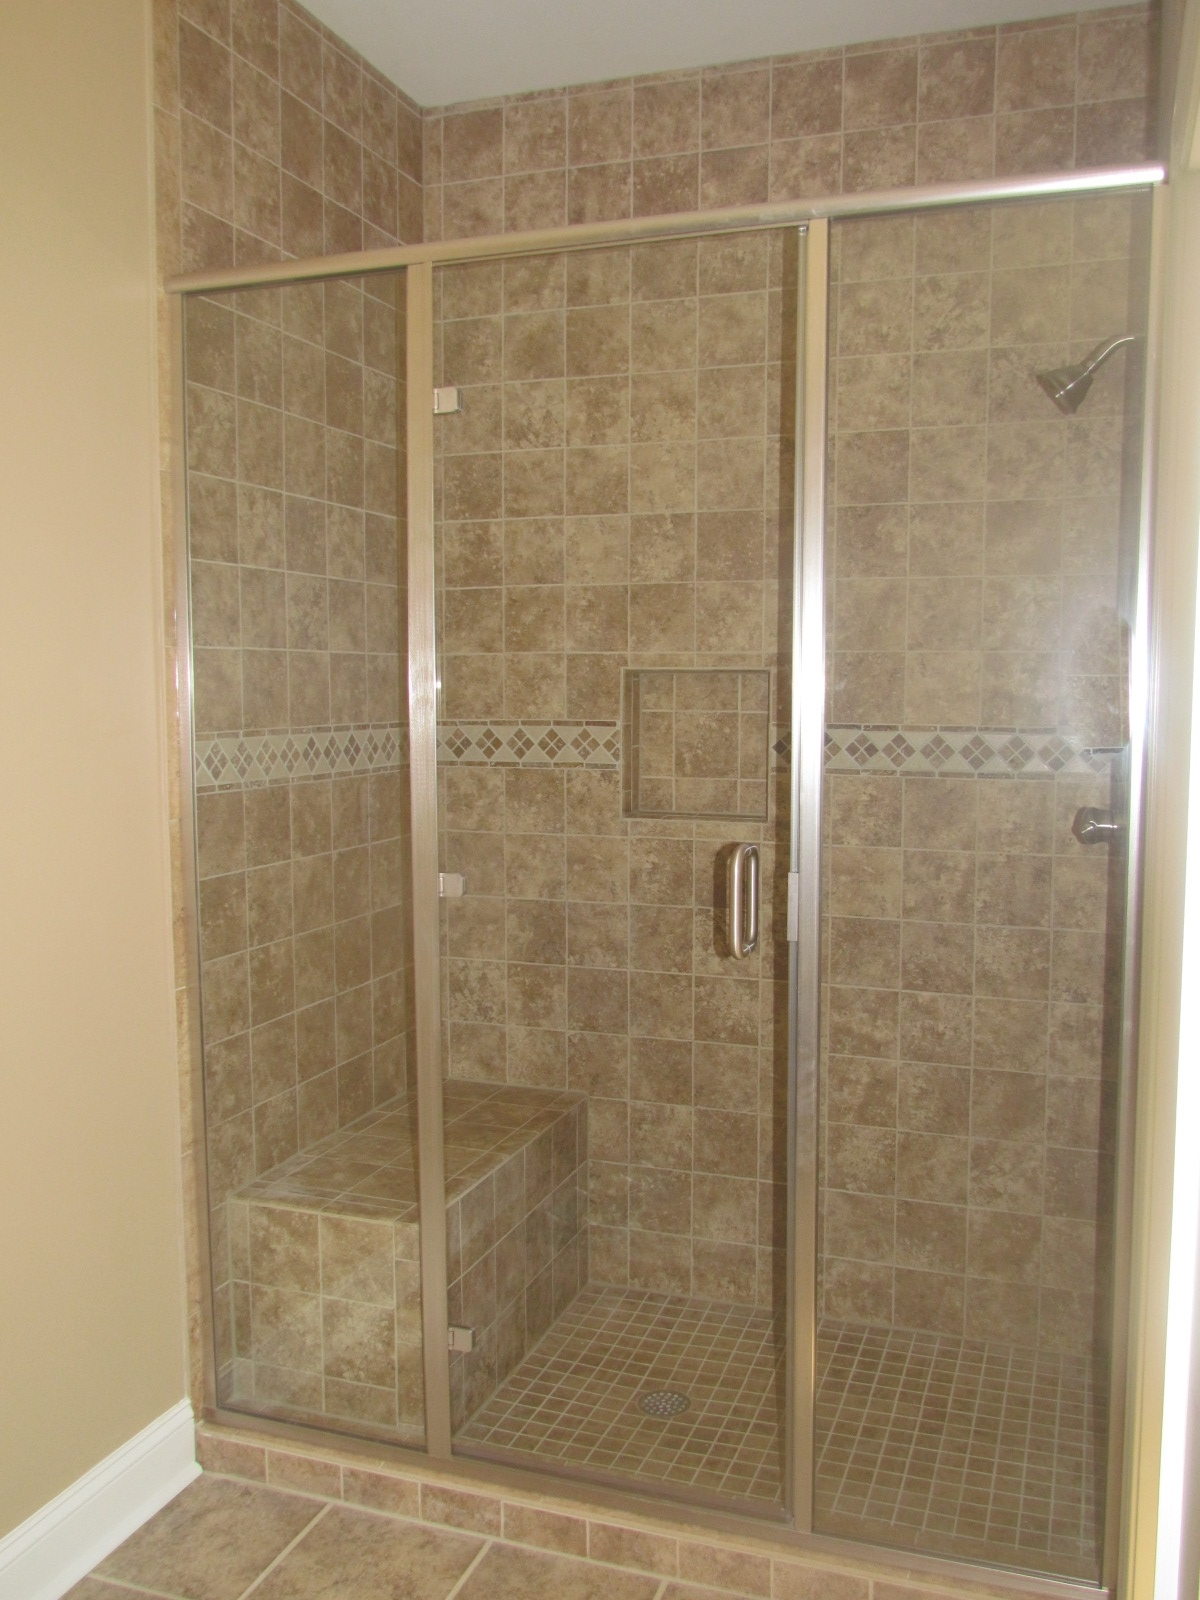 Tile Showers With Glass Doorscool pictures of tiled showers with glass doors esign